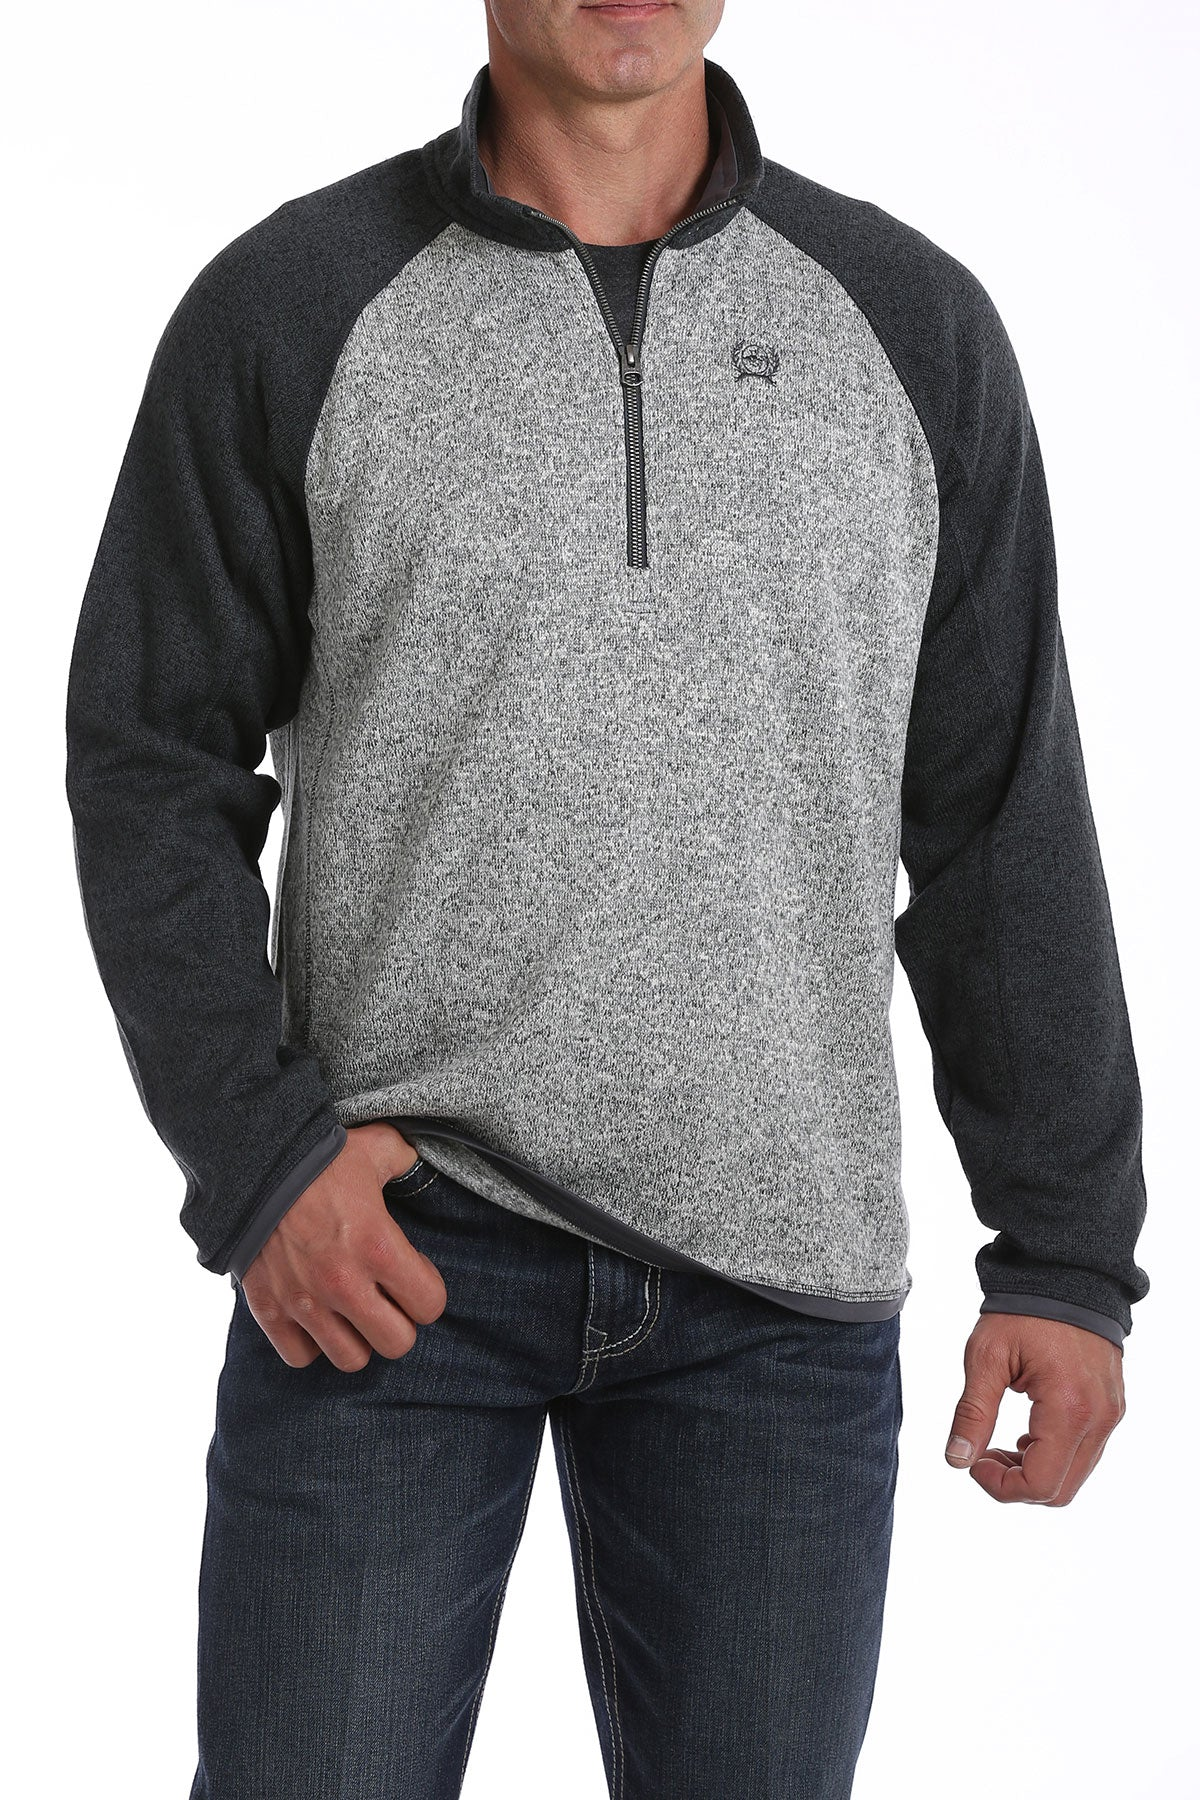 'Cinch' MWK1513001 - 1/4 Zip Sweater Knit Fleece Pullover - Grey